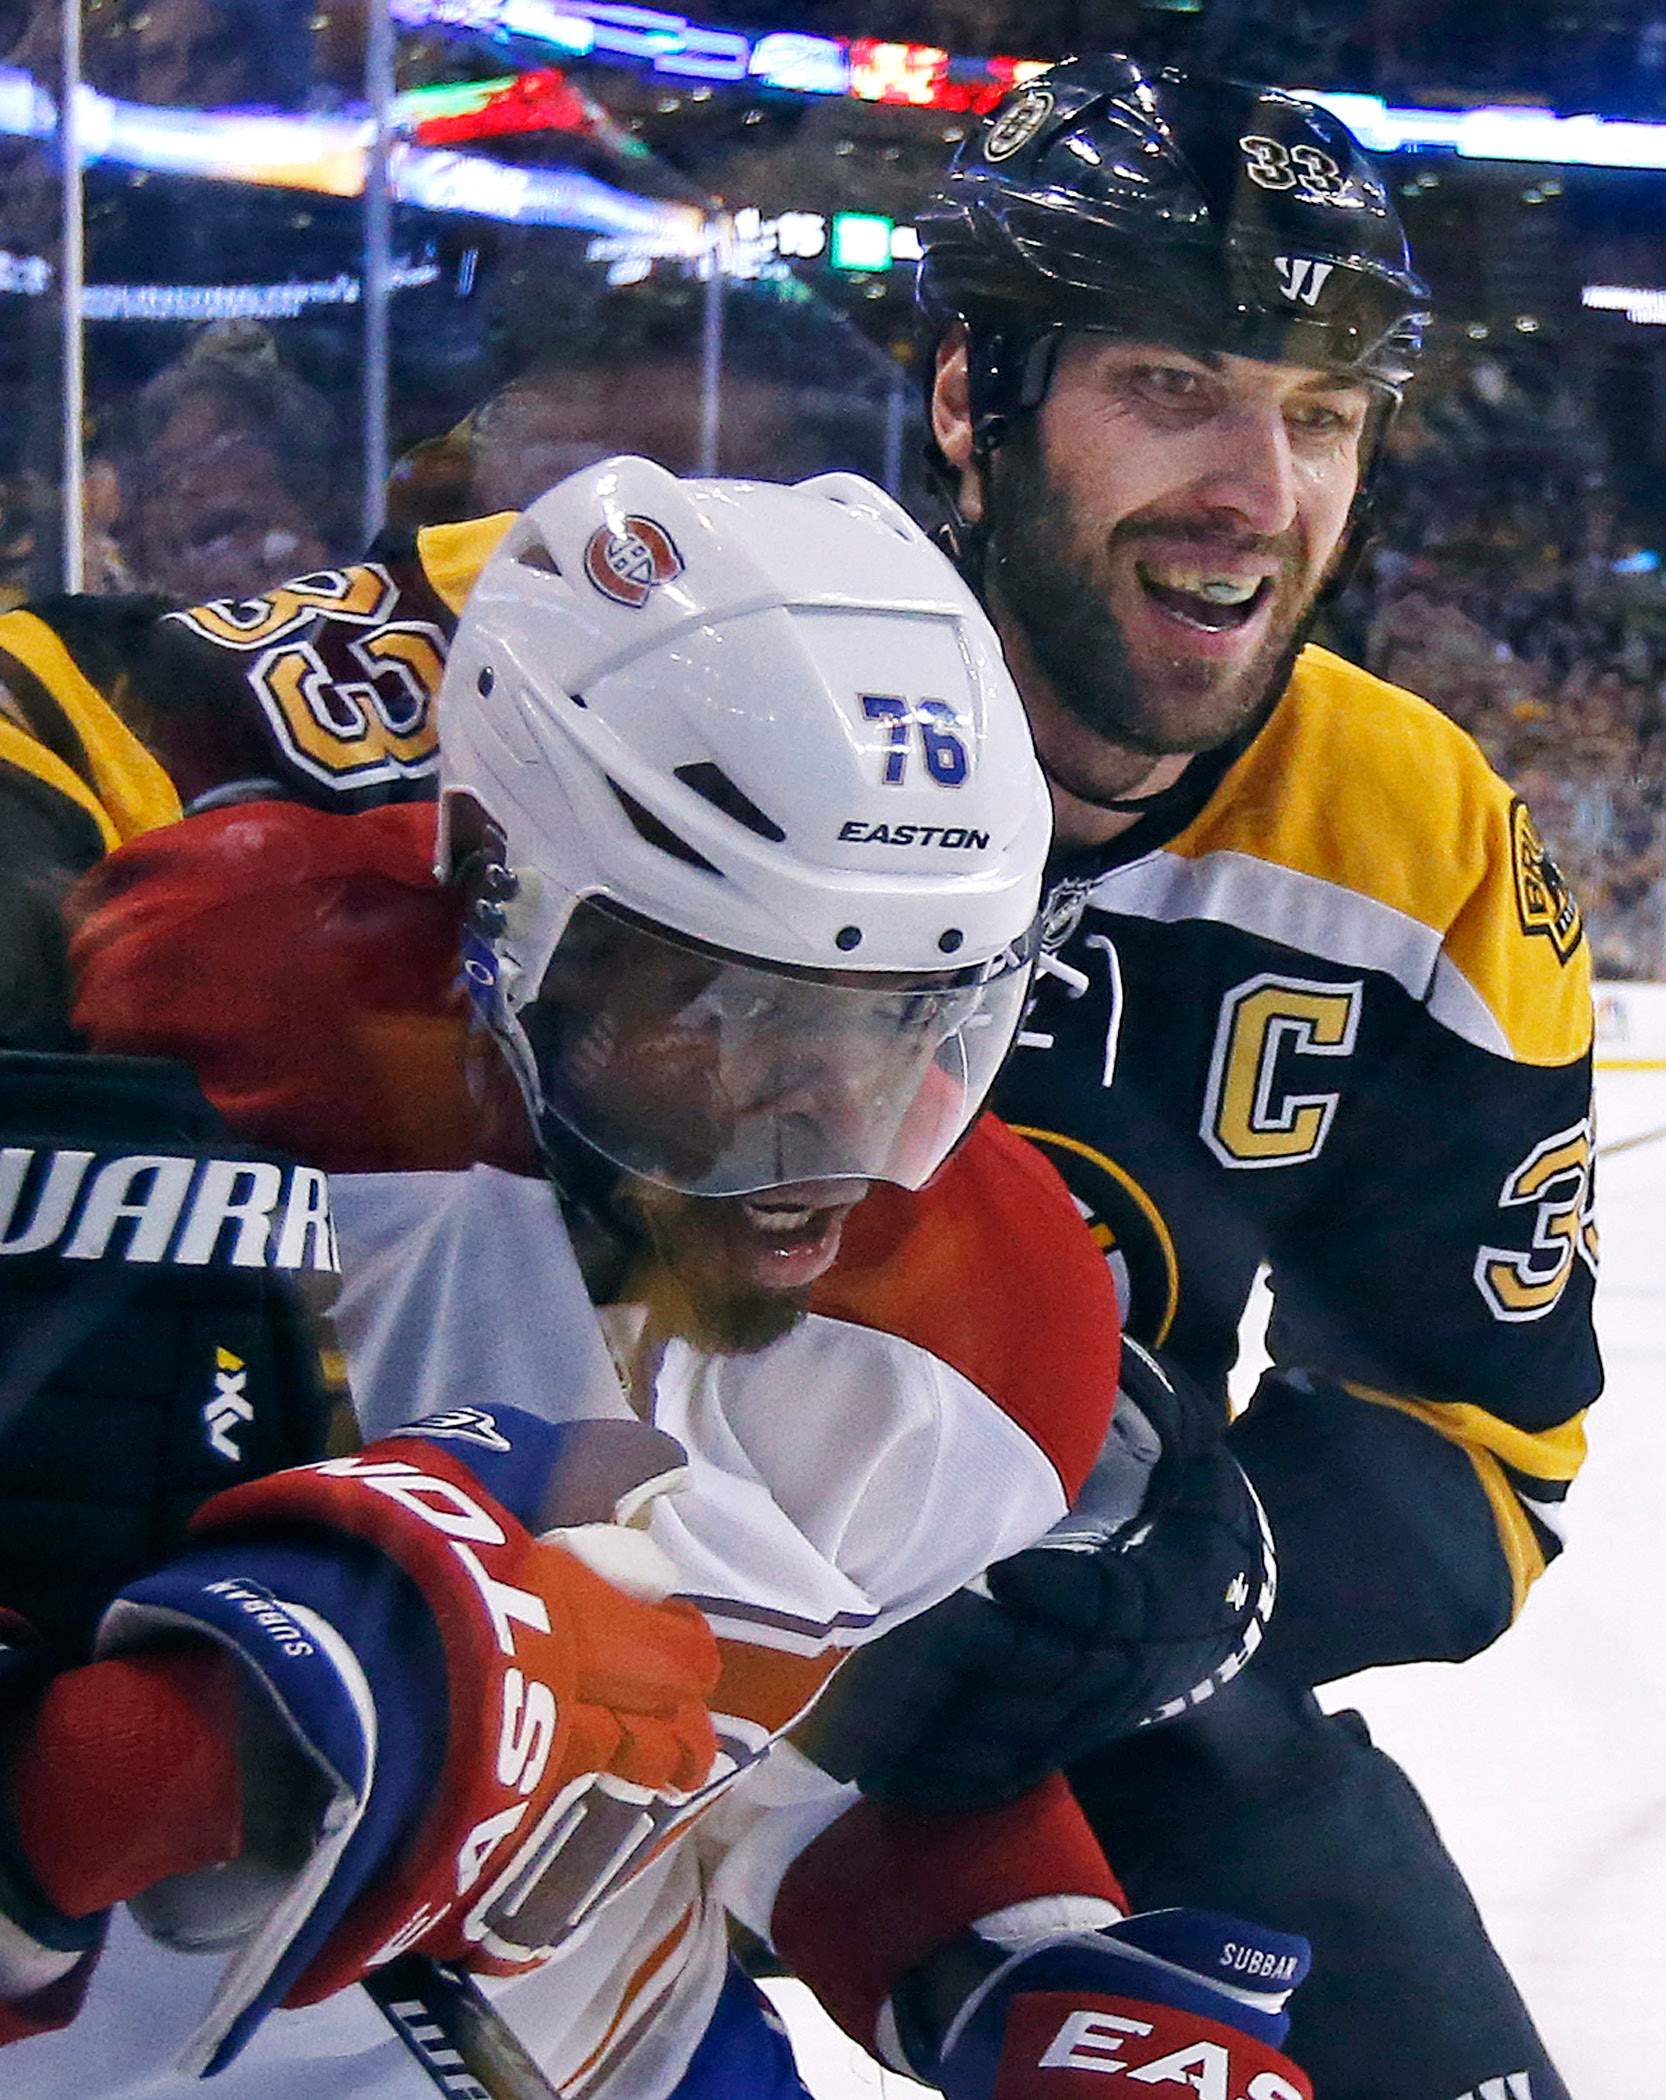 Boston Bruins defenseman Zdeno Chara, right, and Montreal Canadiens defenseman P.K. Subban (76) grapple along the boards during the first period in Game 2 of an NHL hockey second-round Stanley Cup playoff series in Boston, Saturday, May 3, 2014. (AP Photo/Elise Amendola)